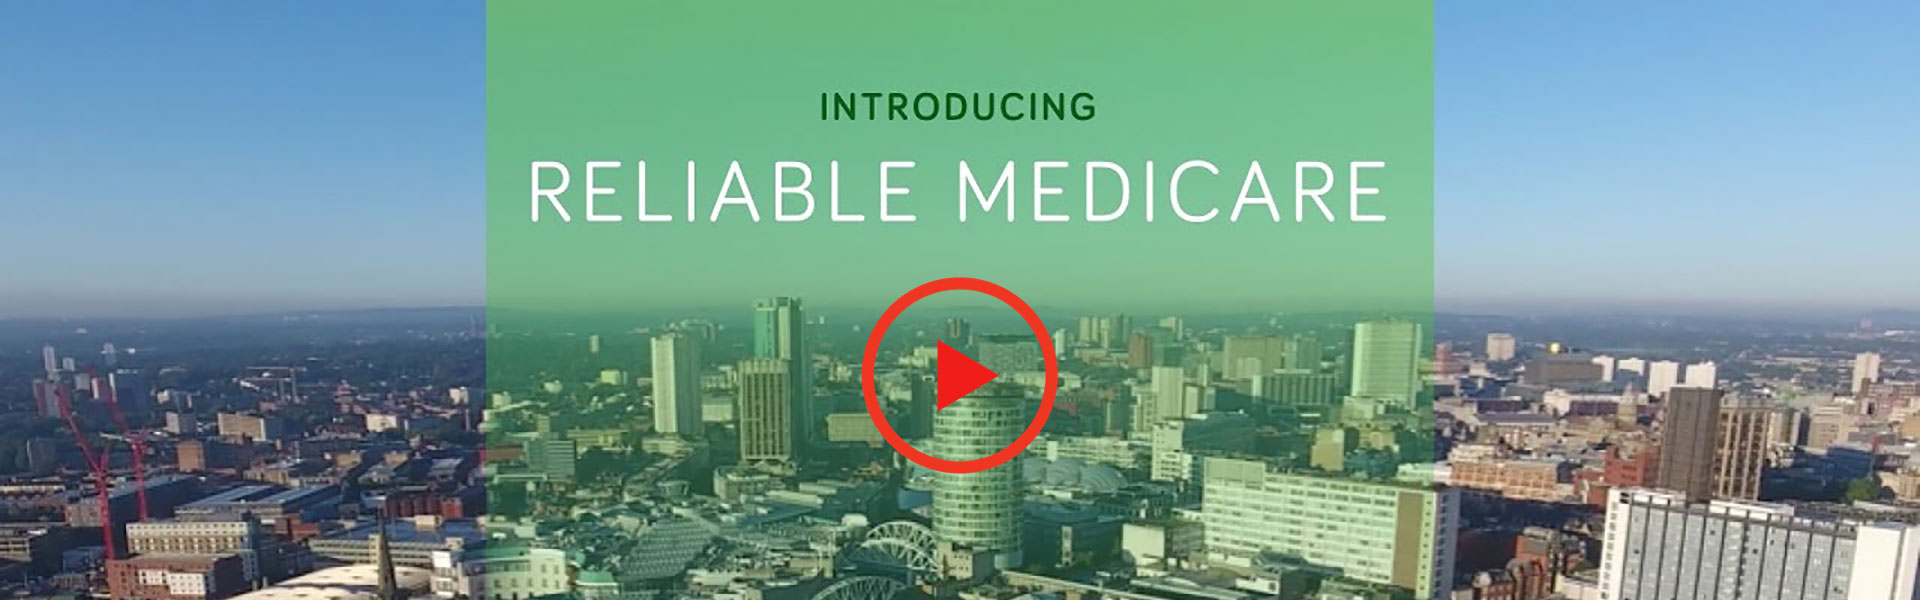 Reliable Medicare Video